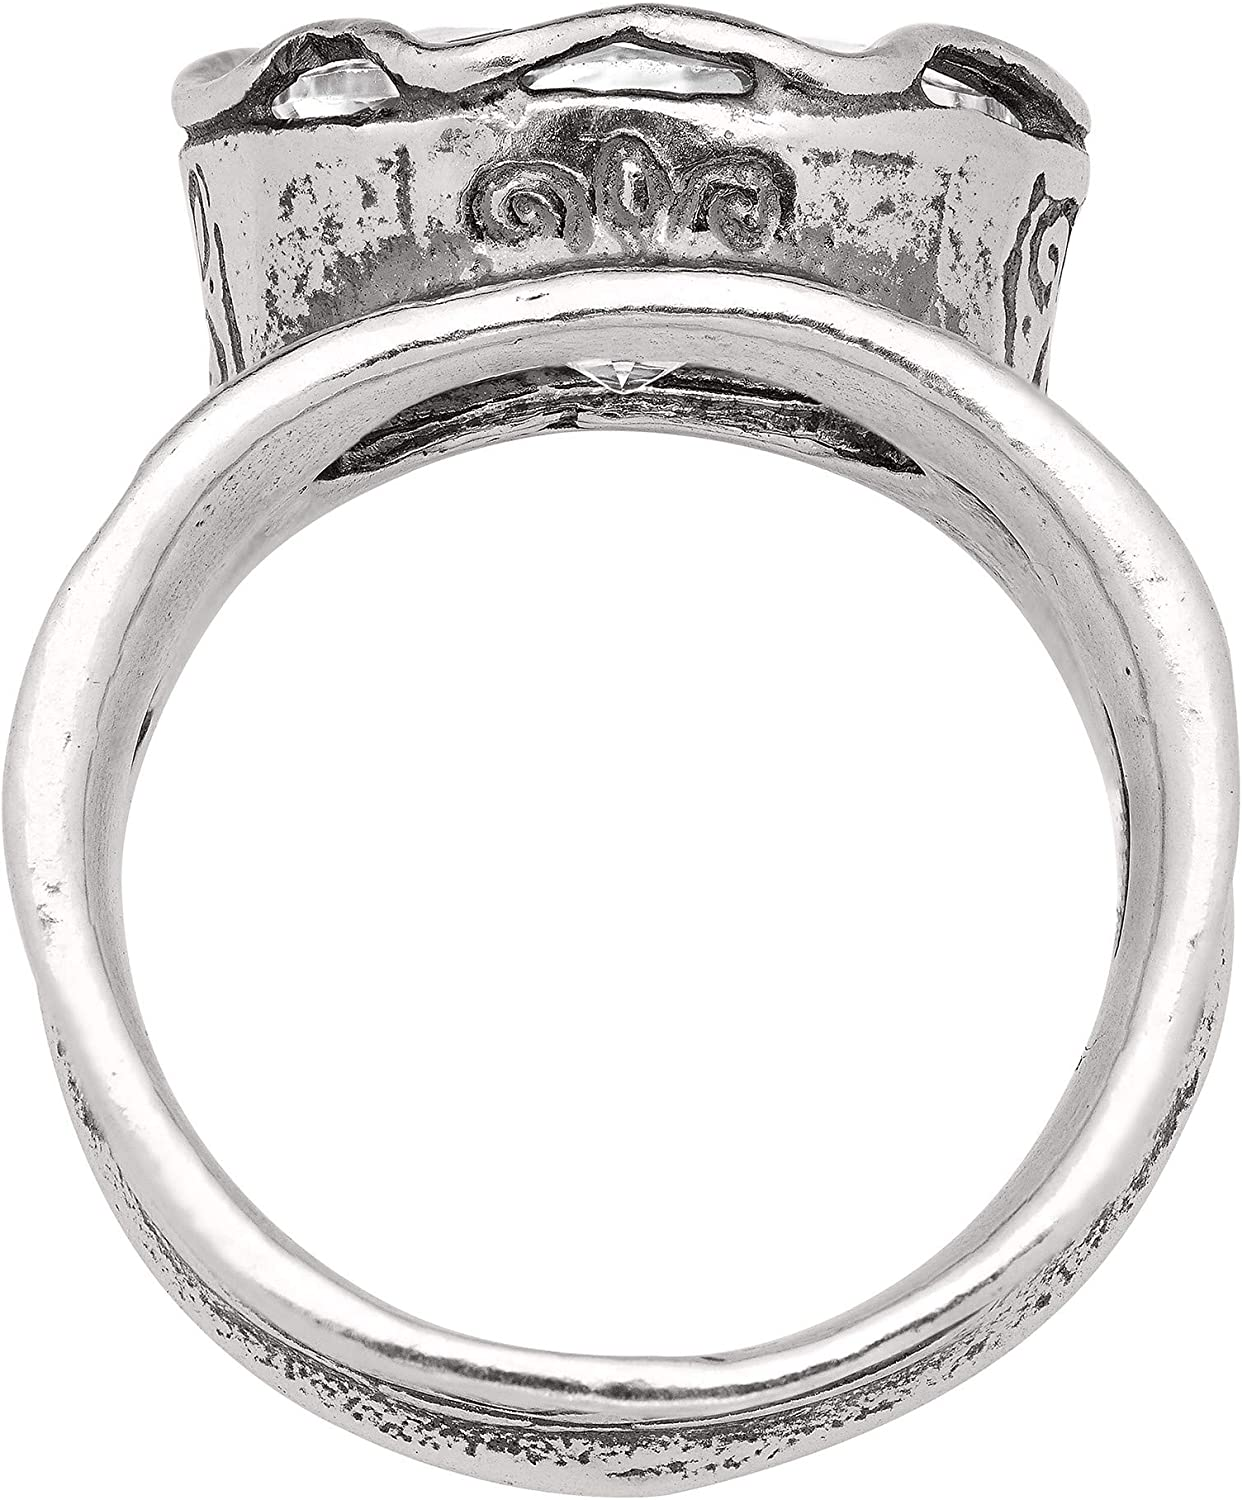 Silpada Rustic Royalty 7 ct Cubic Zirconia Statement Ring in Sterling Silver